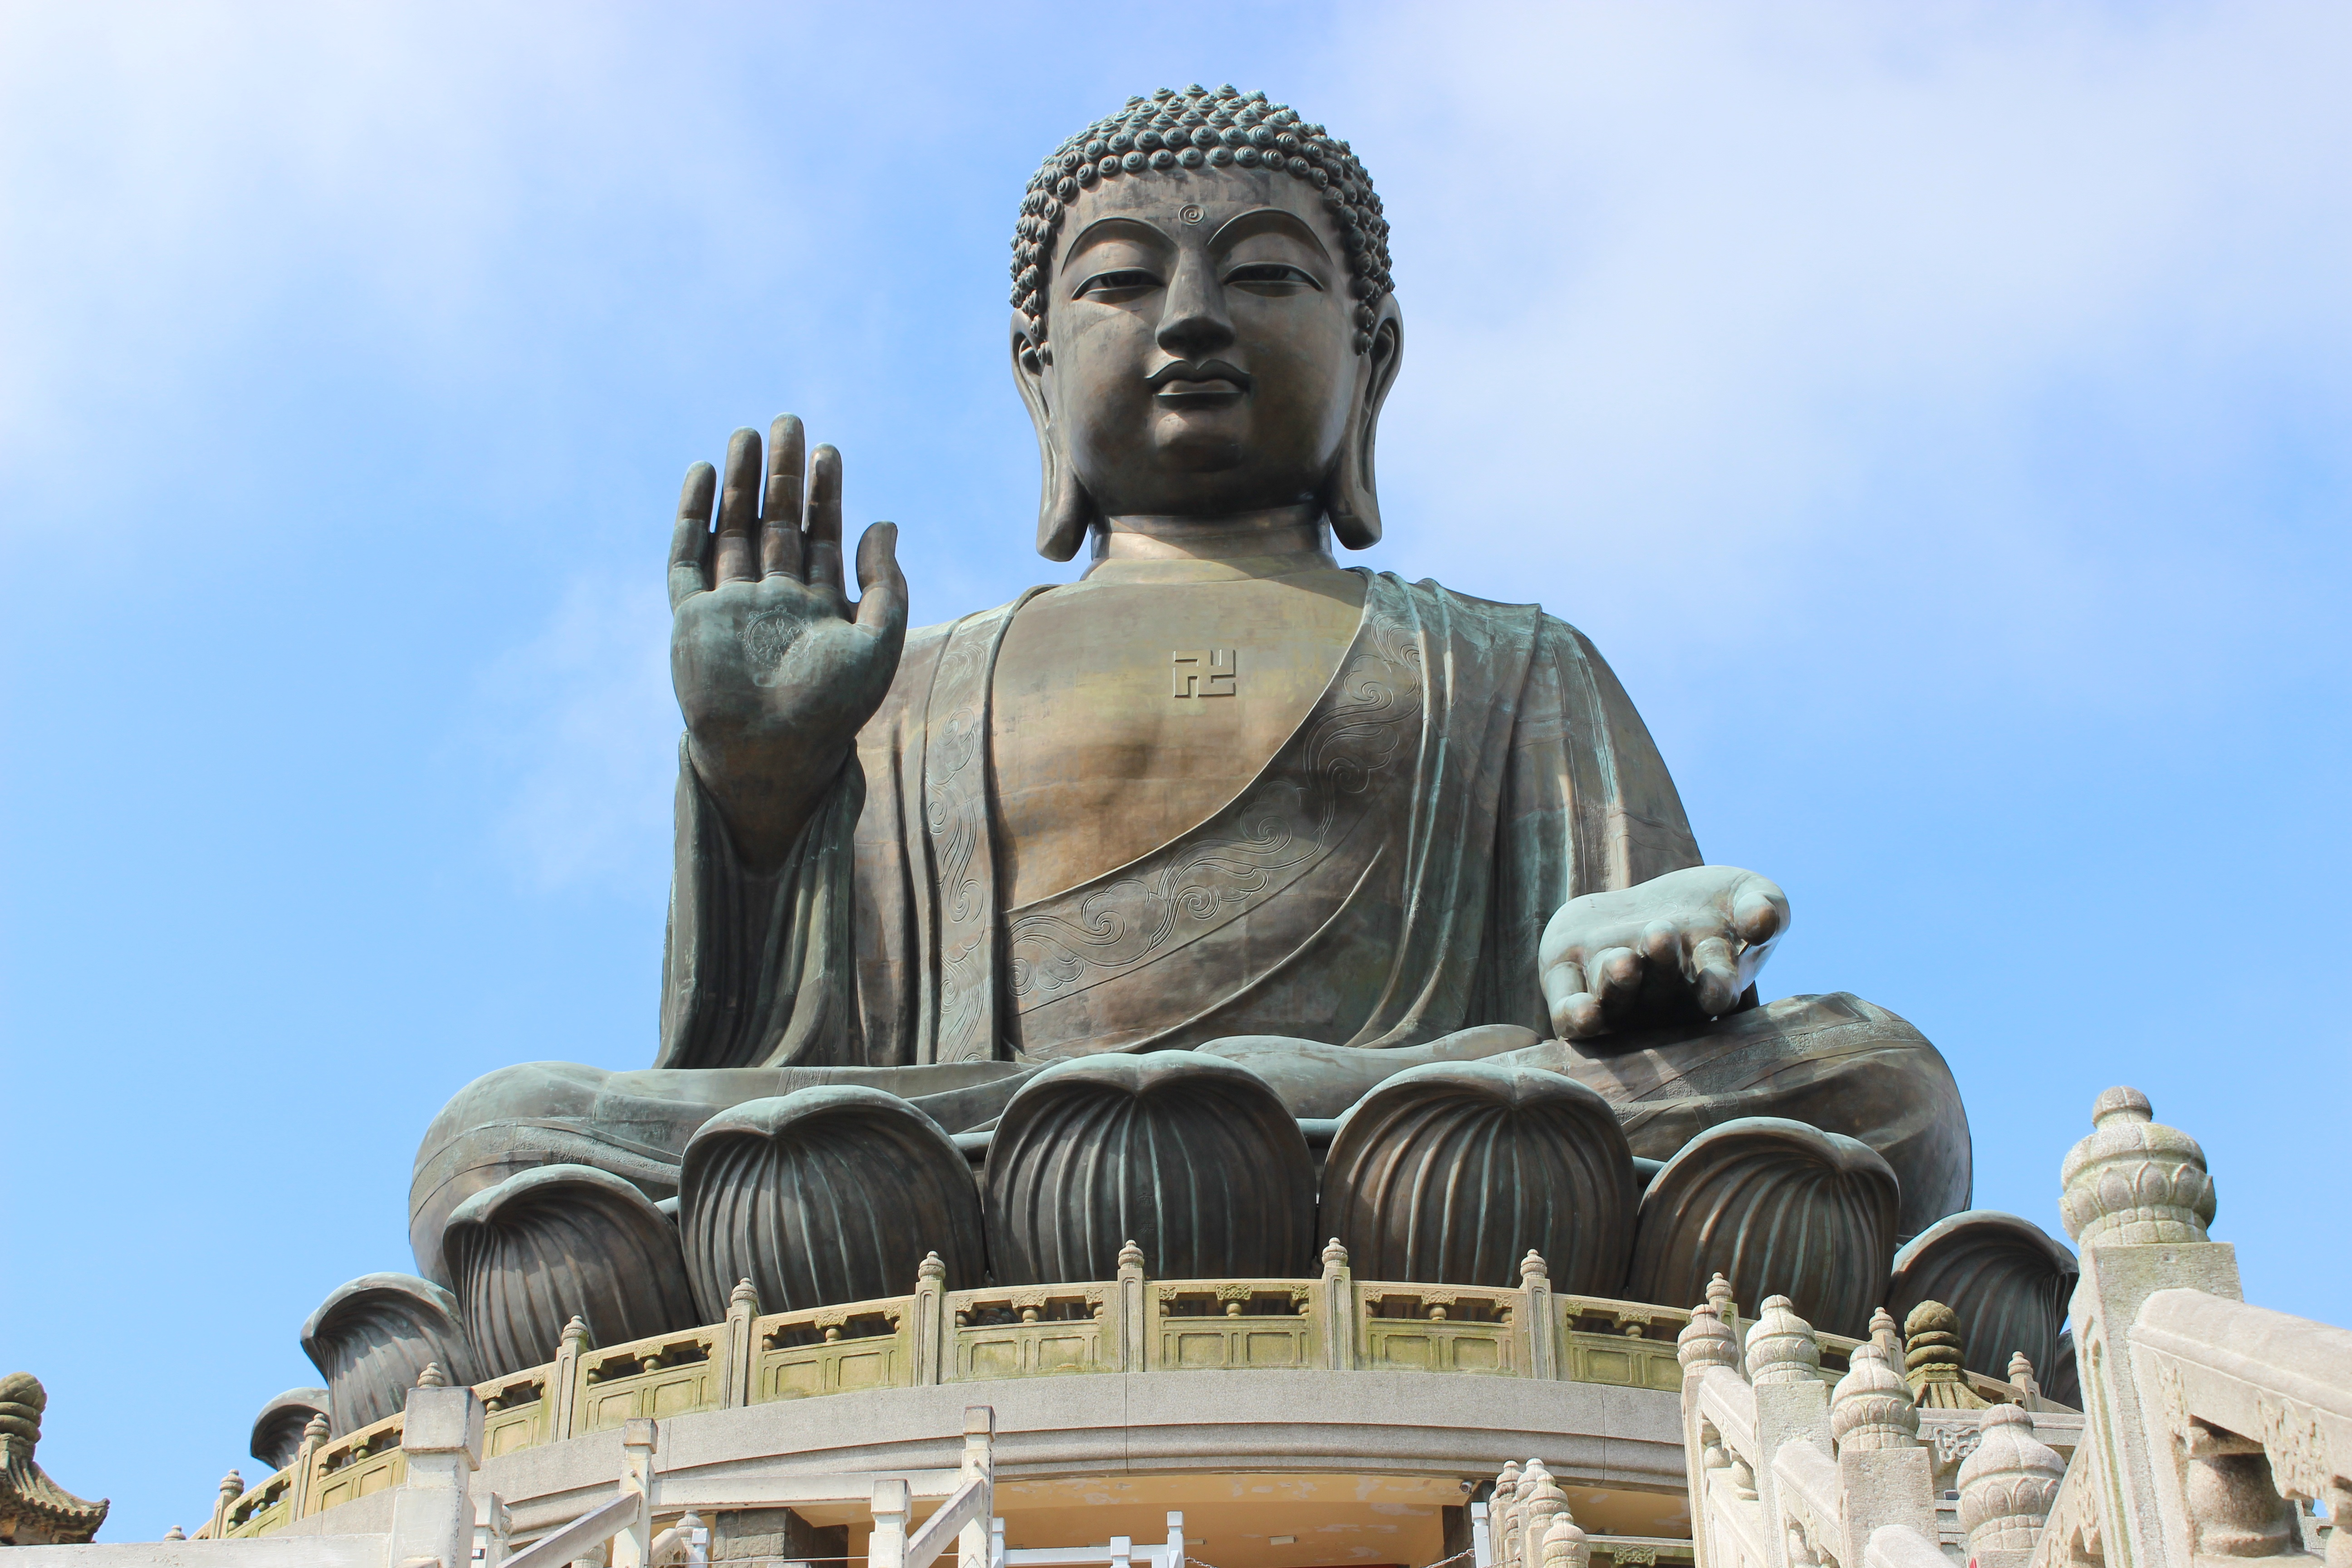 The Tian Tan Buddha is revered by tourists